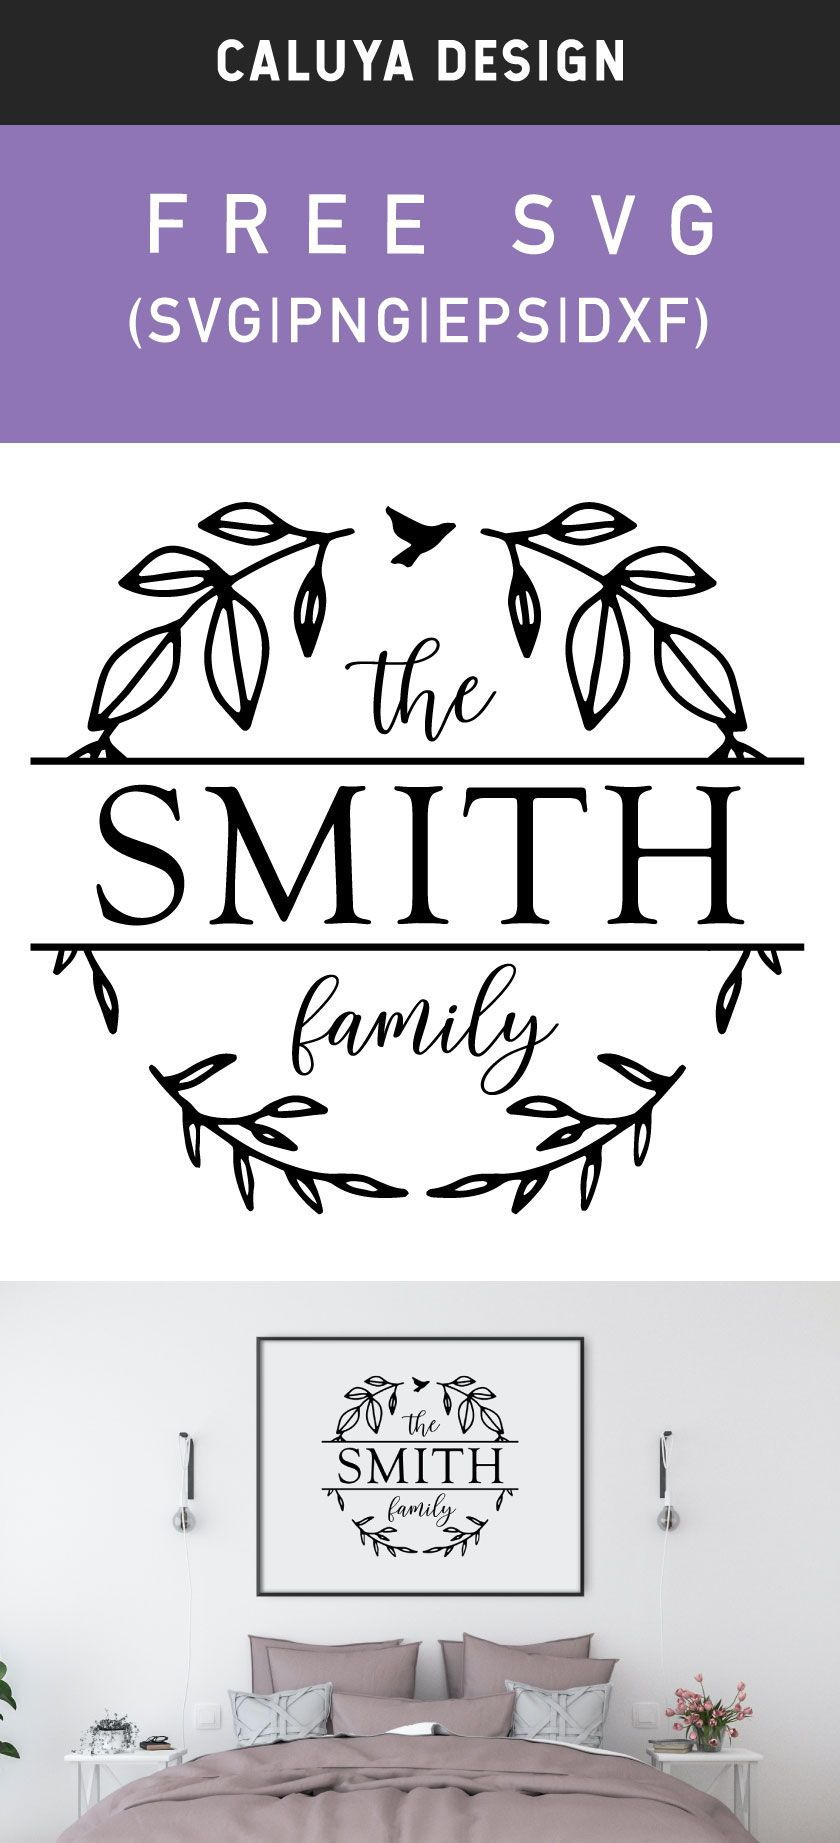 Free Wreath Family Monogram Svg Png Eps Dxf By Caluya Design In 2020 Free Cricut Images Cricut Monogram Free Monogram Fonts